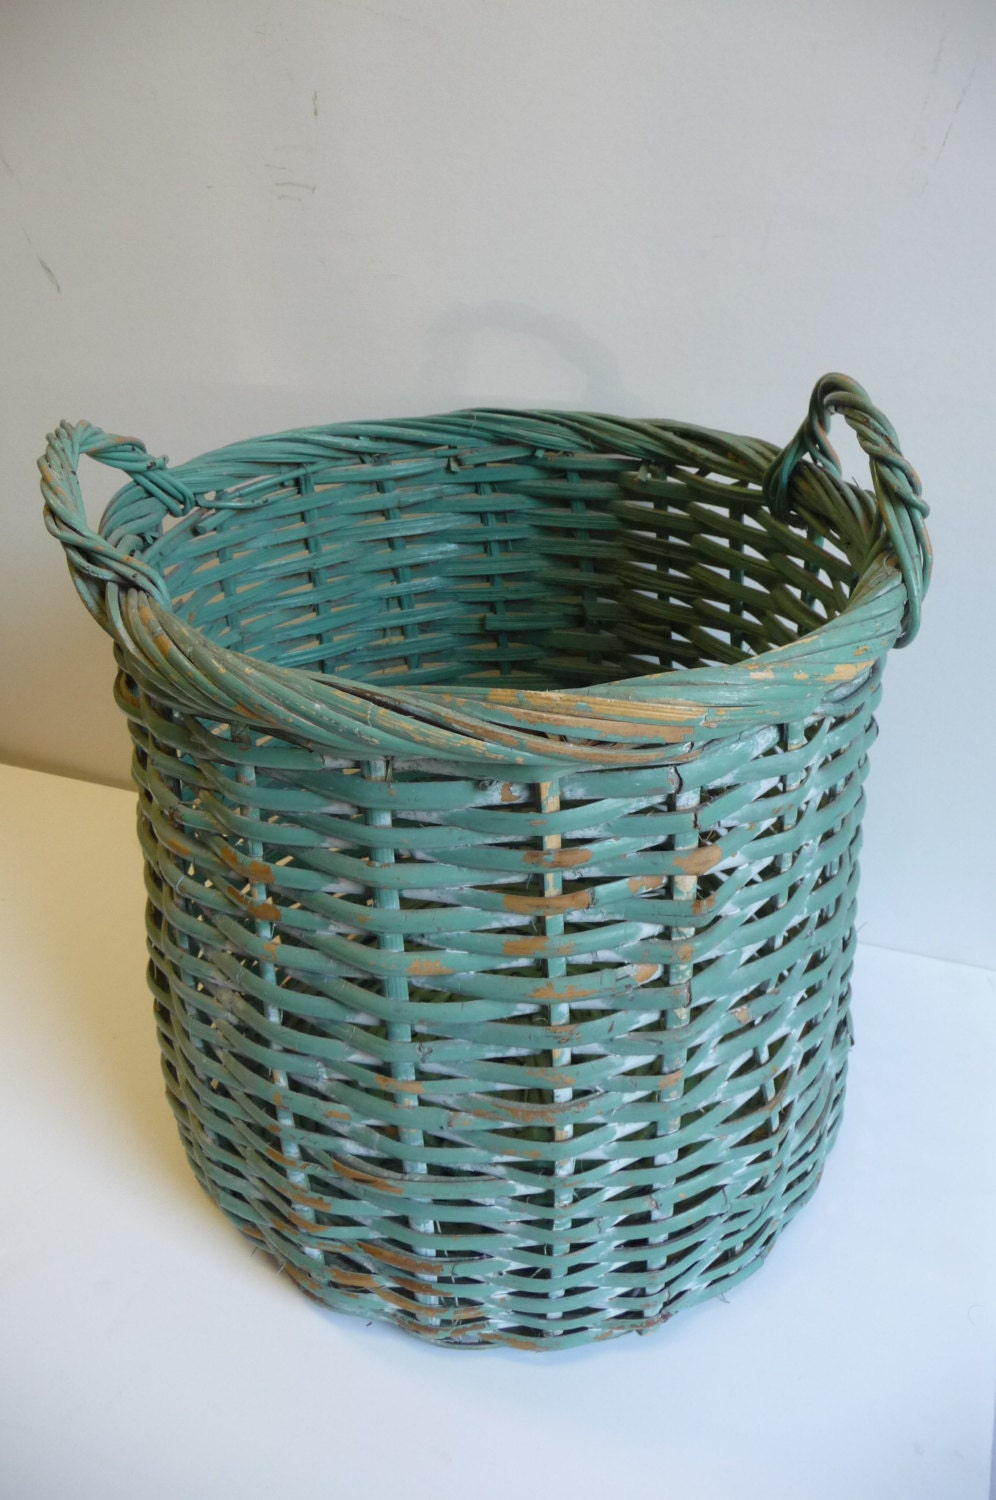 Vintage Basket Large Wicker Wood With Handles Sage Green